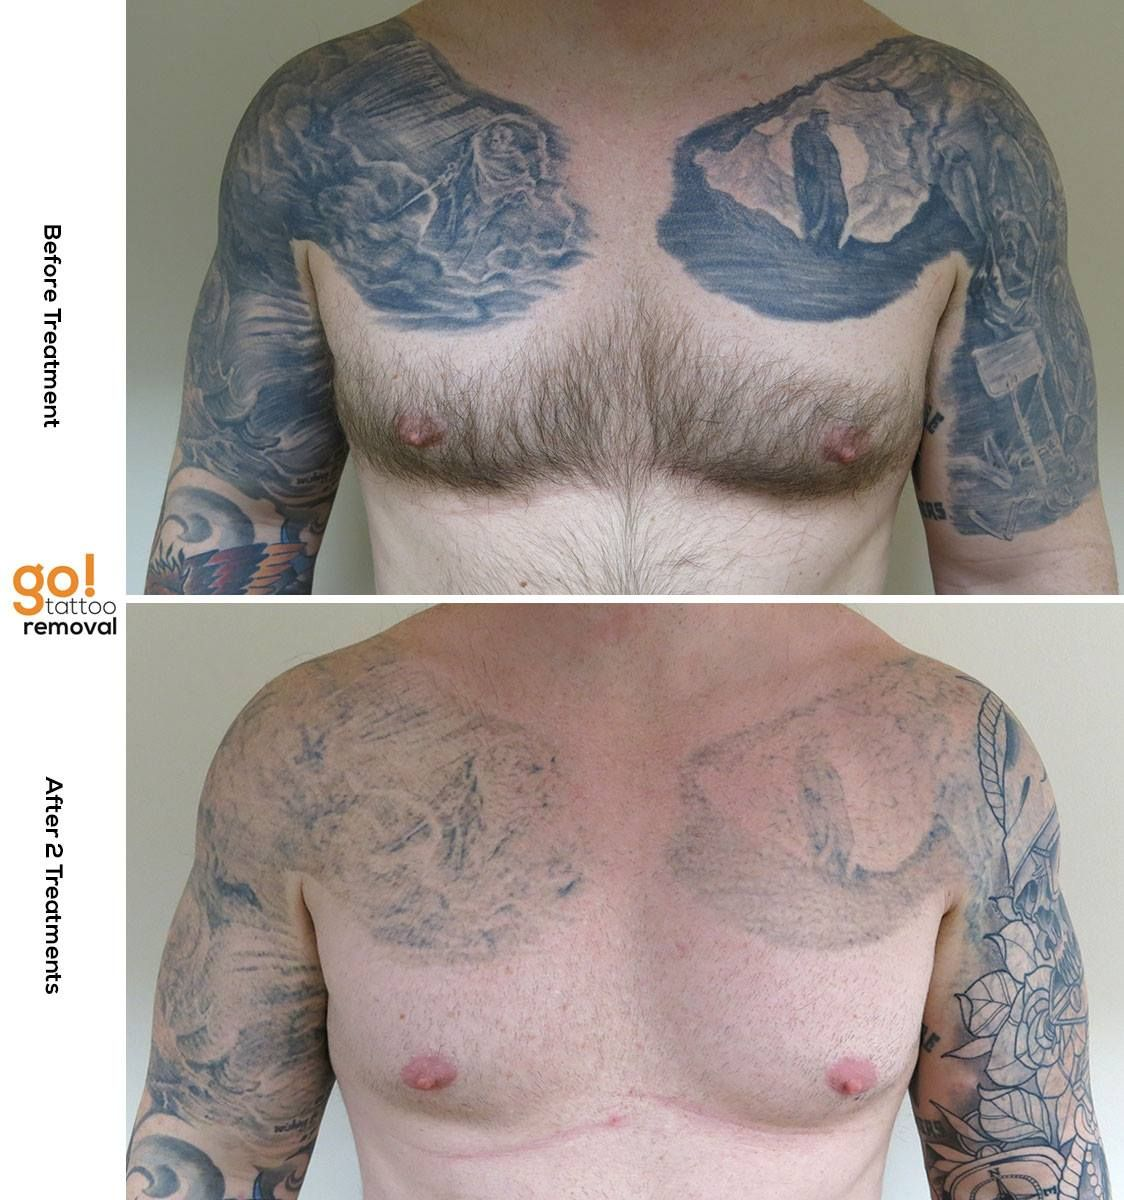 This Client Brought A Huge Project To Us Fade Both Half Sleeves And Chest Plates So They Could Be Covered And Changed Tattoo Removal Laser Surgery New Tattoos